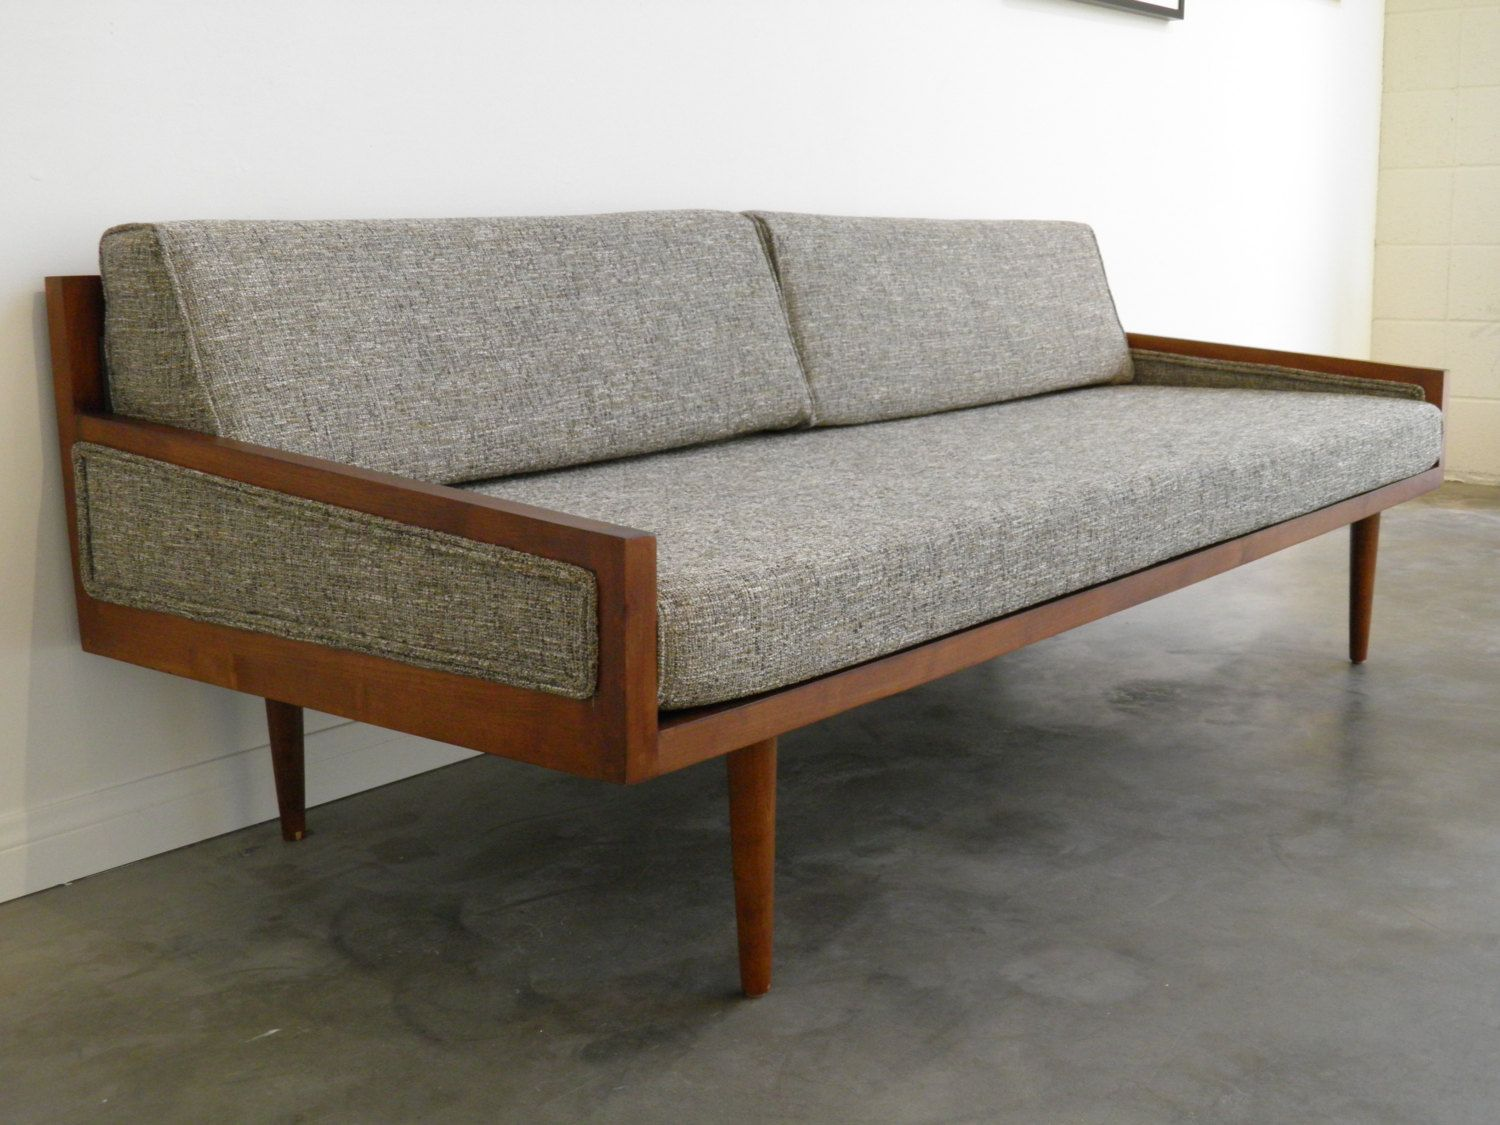 Mid Century Style Daybeds | More Modern daybed and Daybed ideas